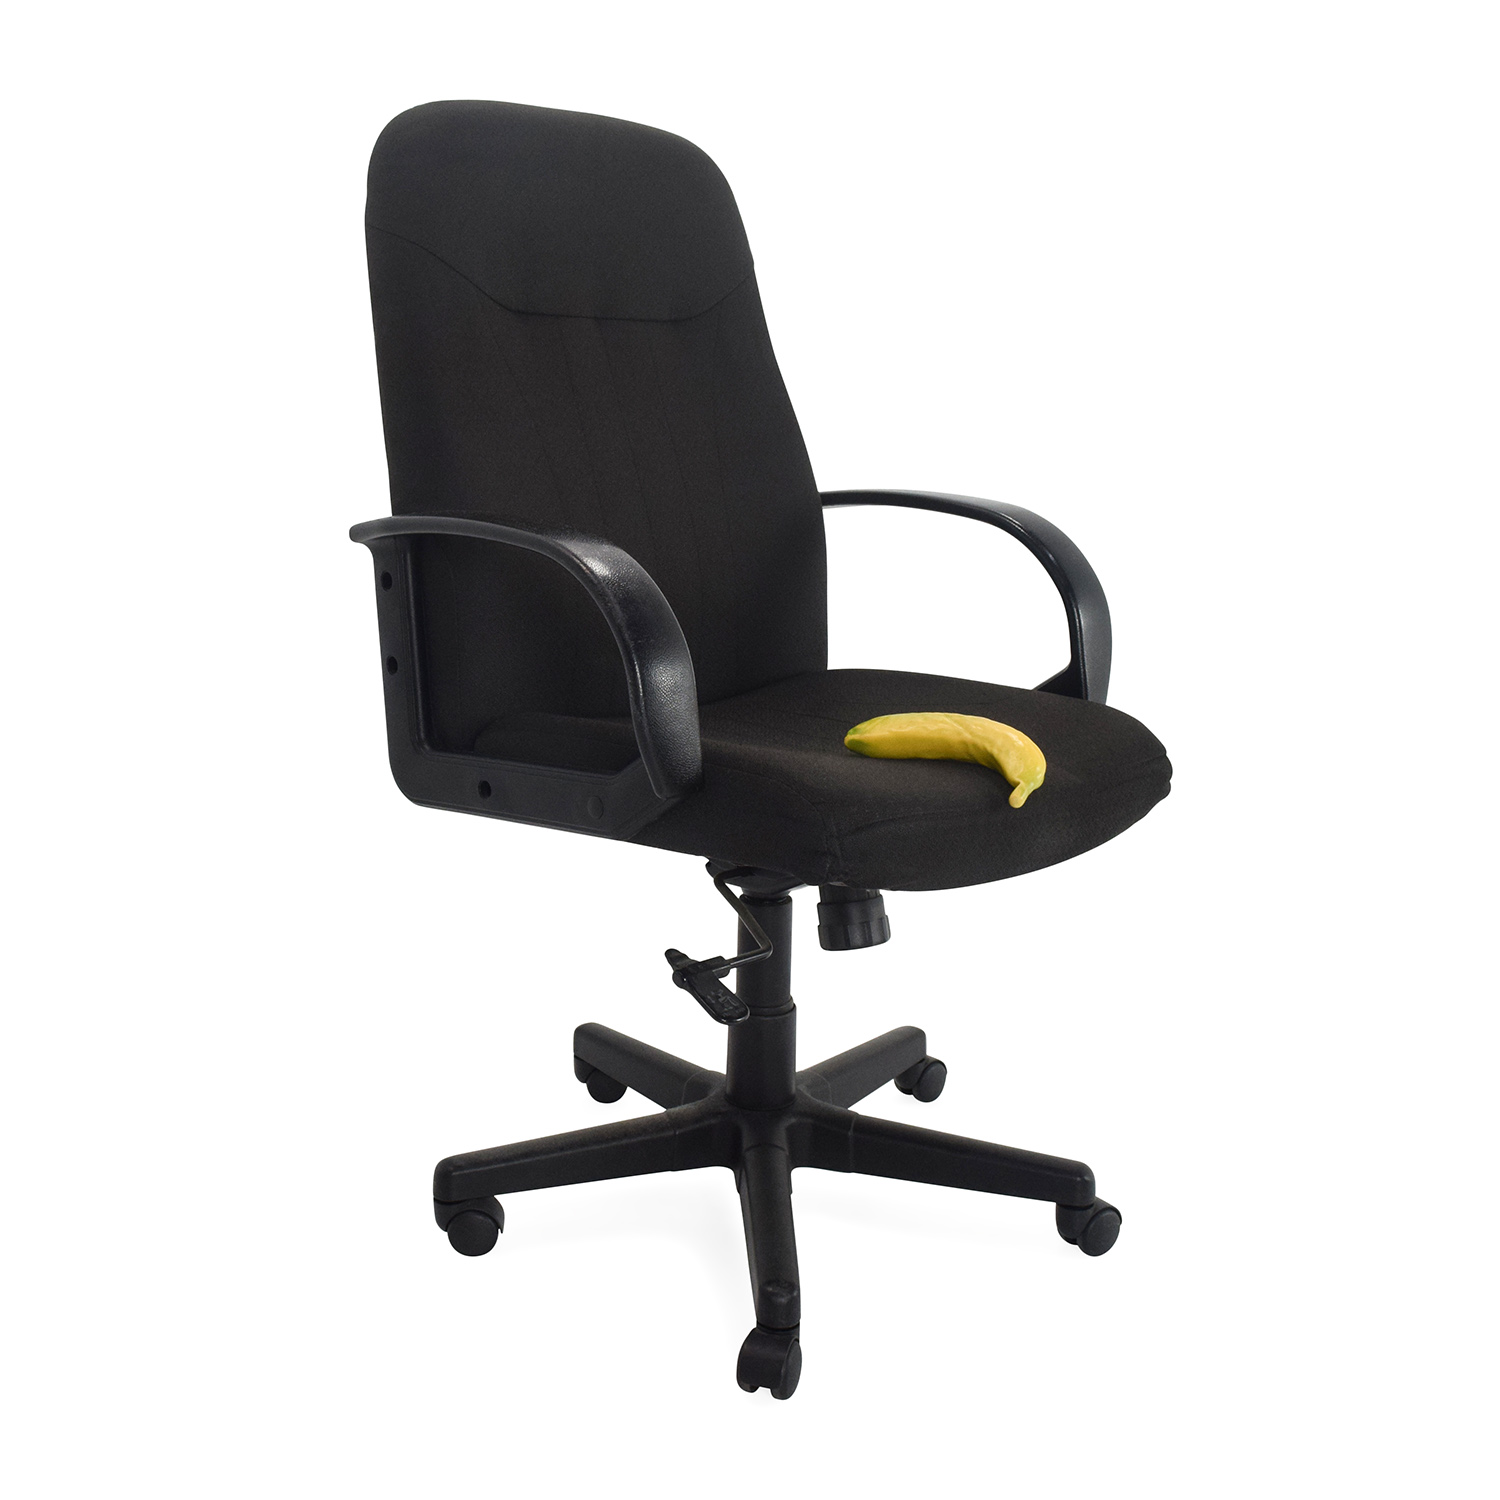 88% OFF Comfortable Computer Chair Chairs